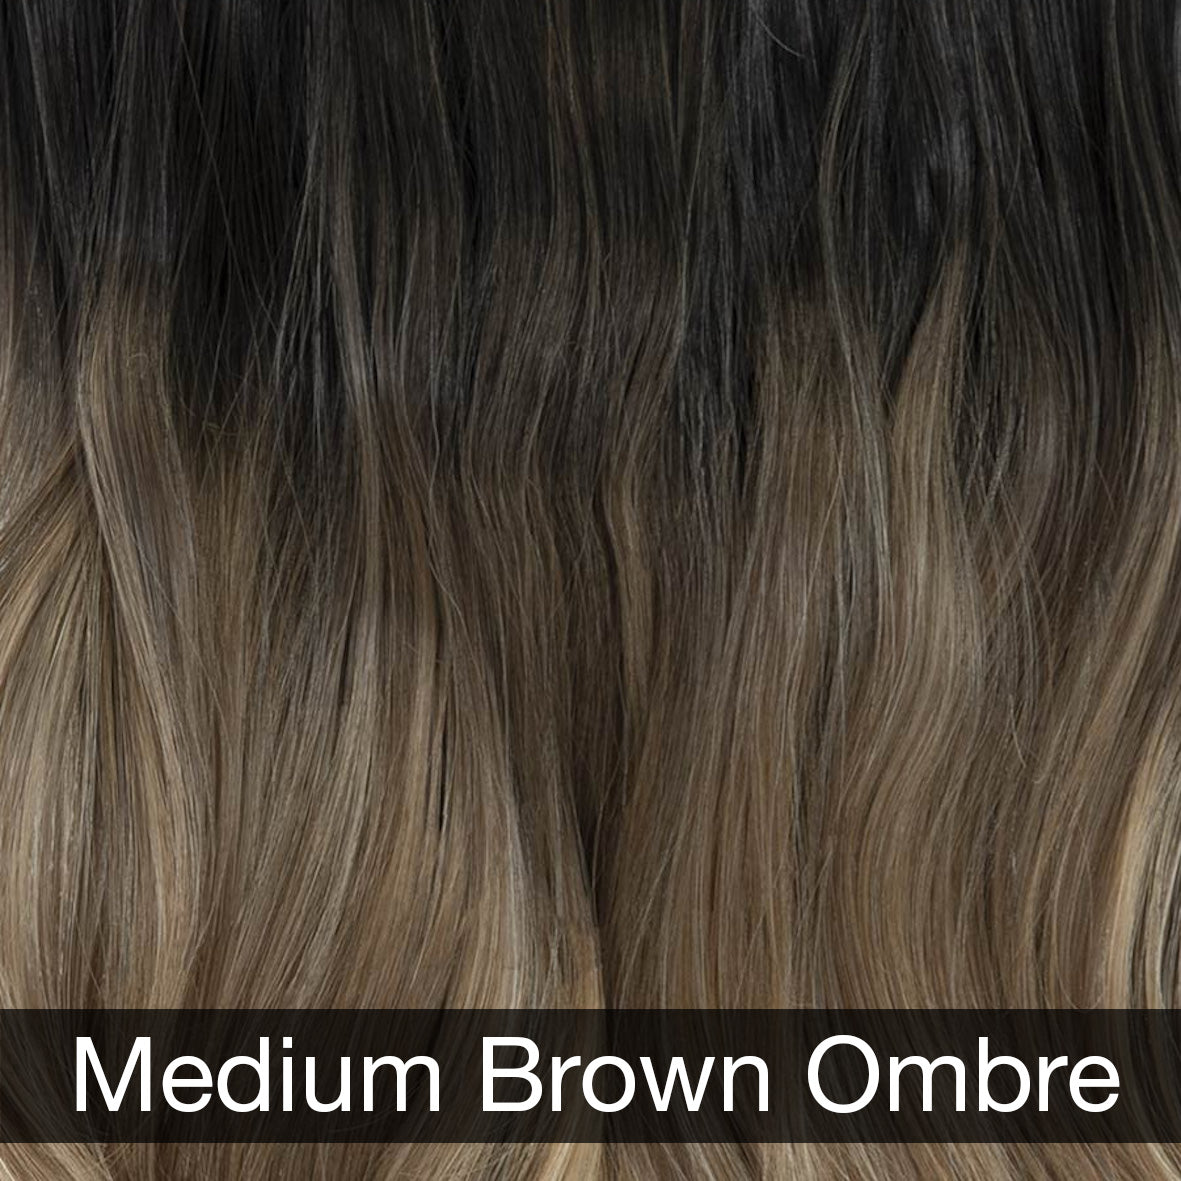 Medium Brown Ombre Hair Extensions	 (4490345971792)